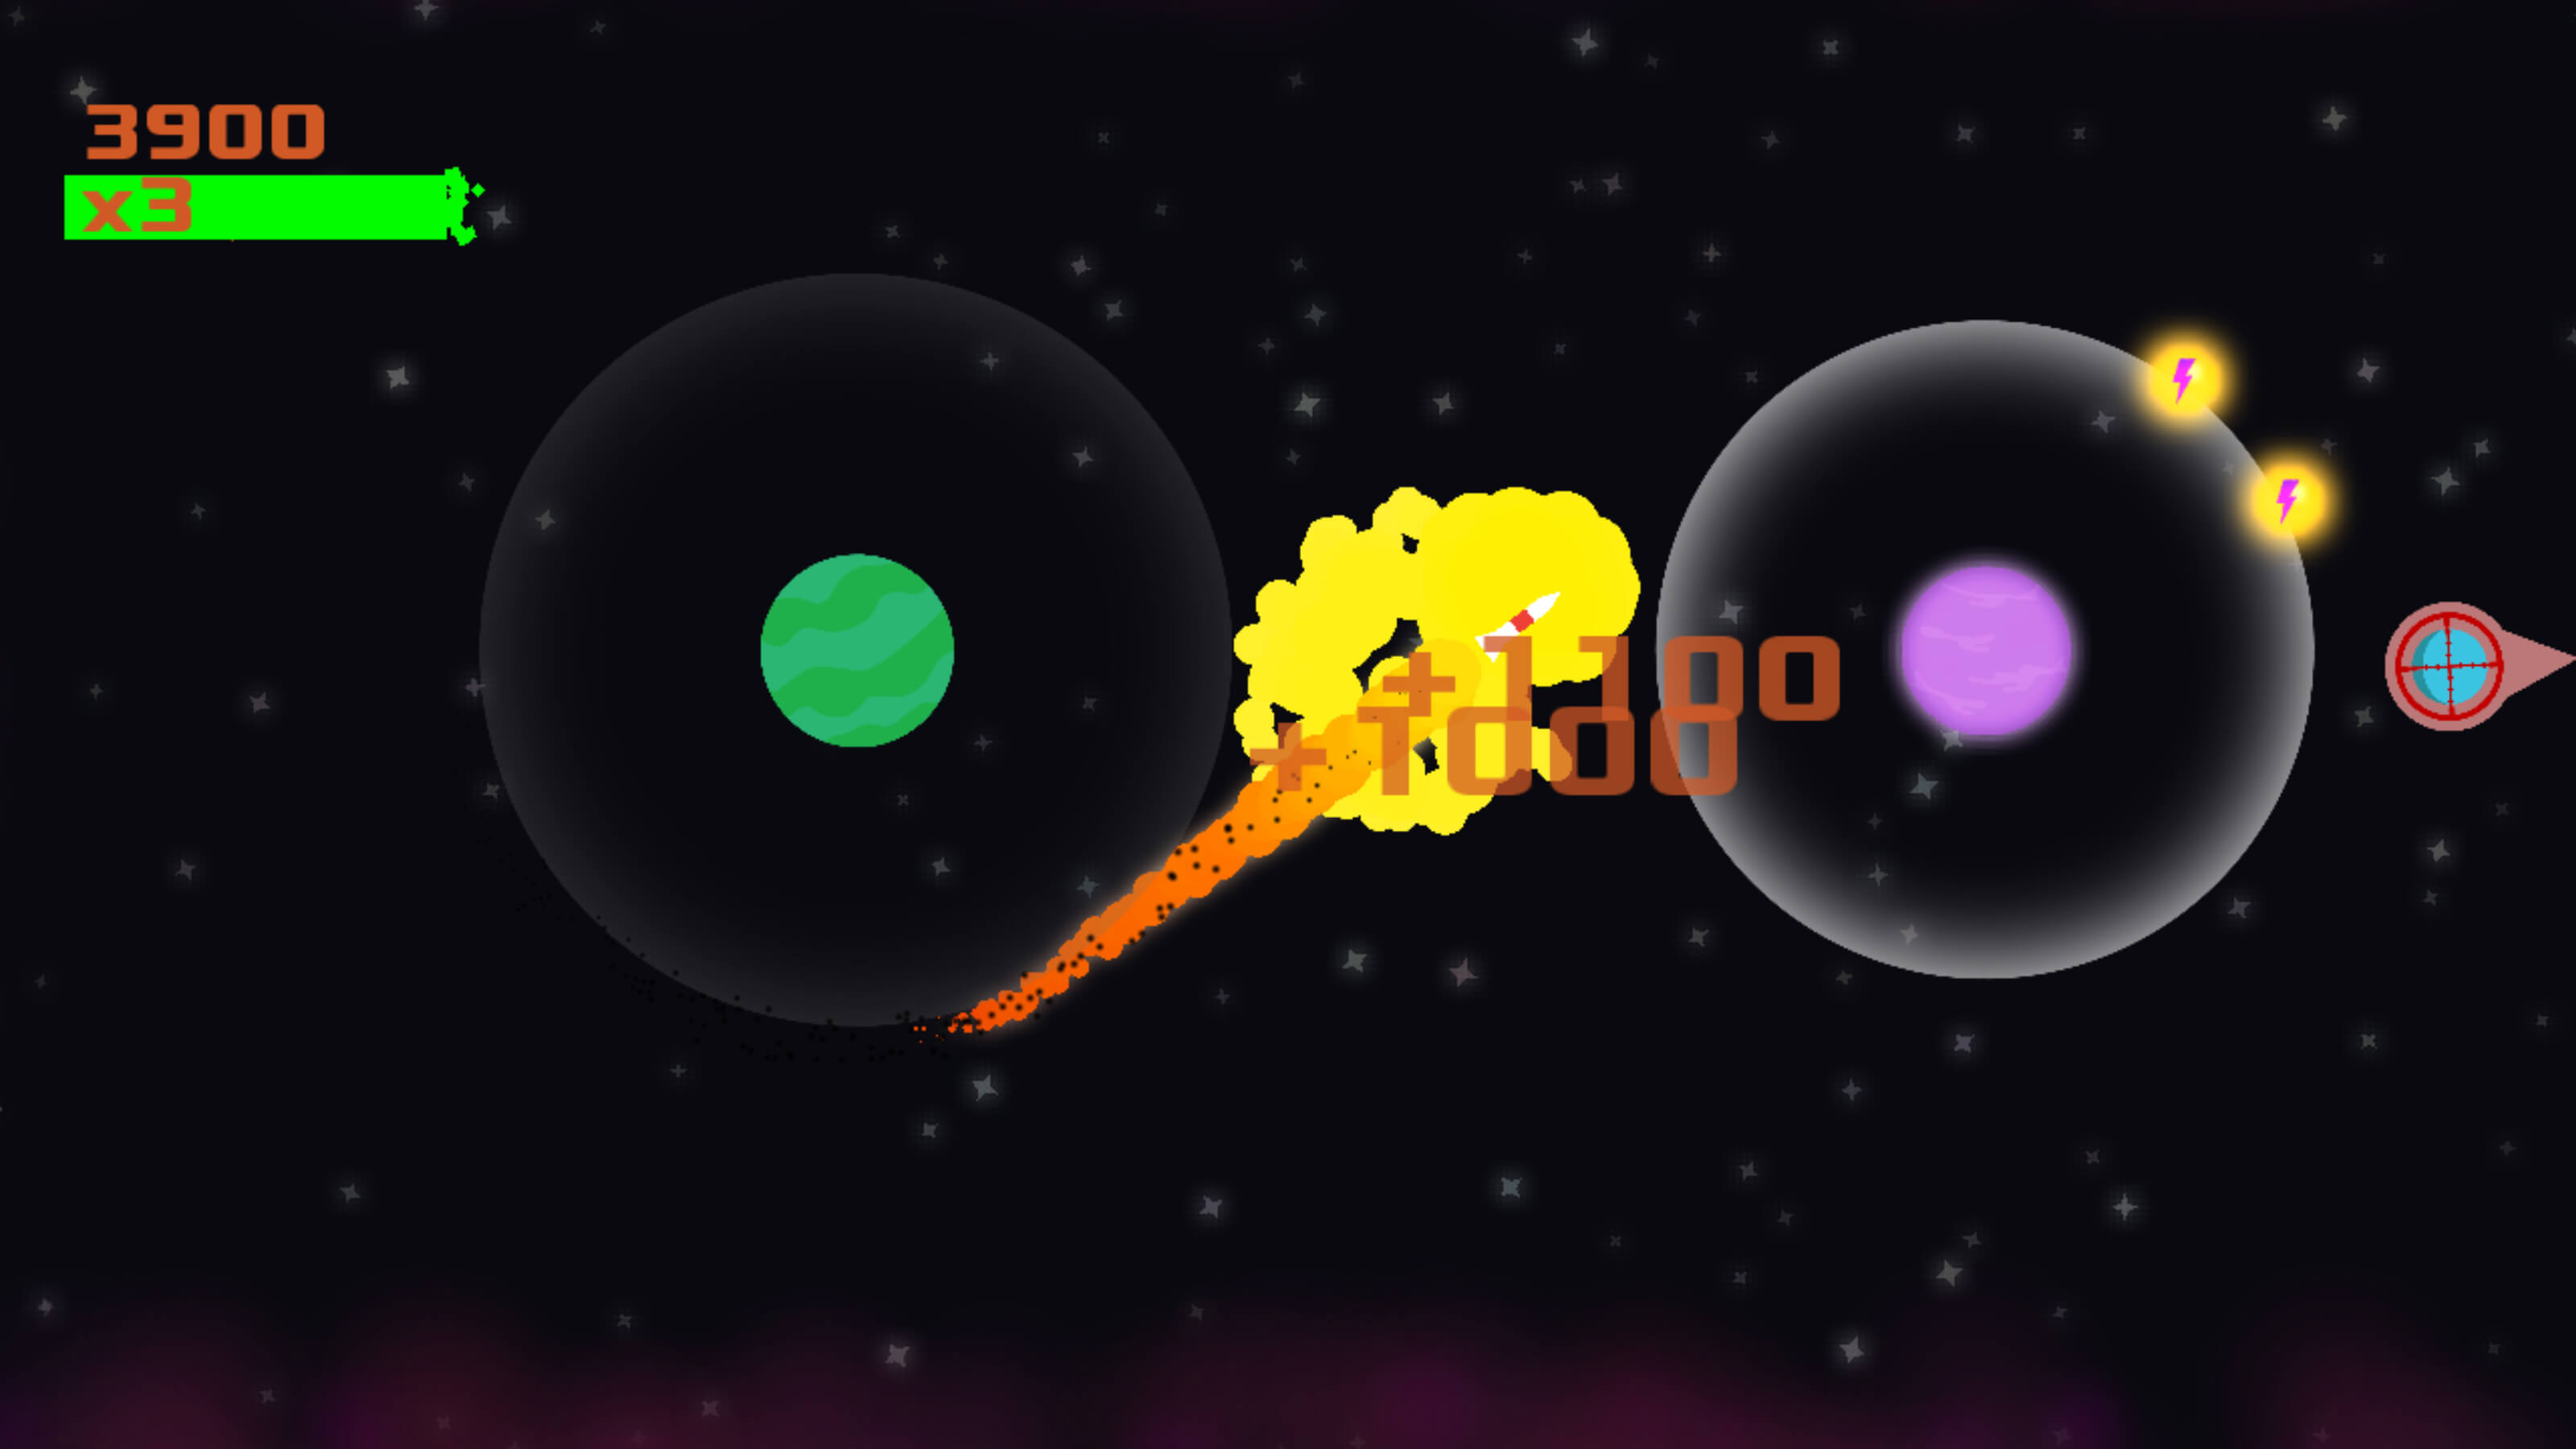 A rocket blasts from a green planet to a pink one, collecting power ups and points in between.